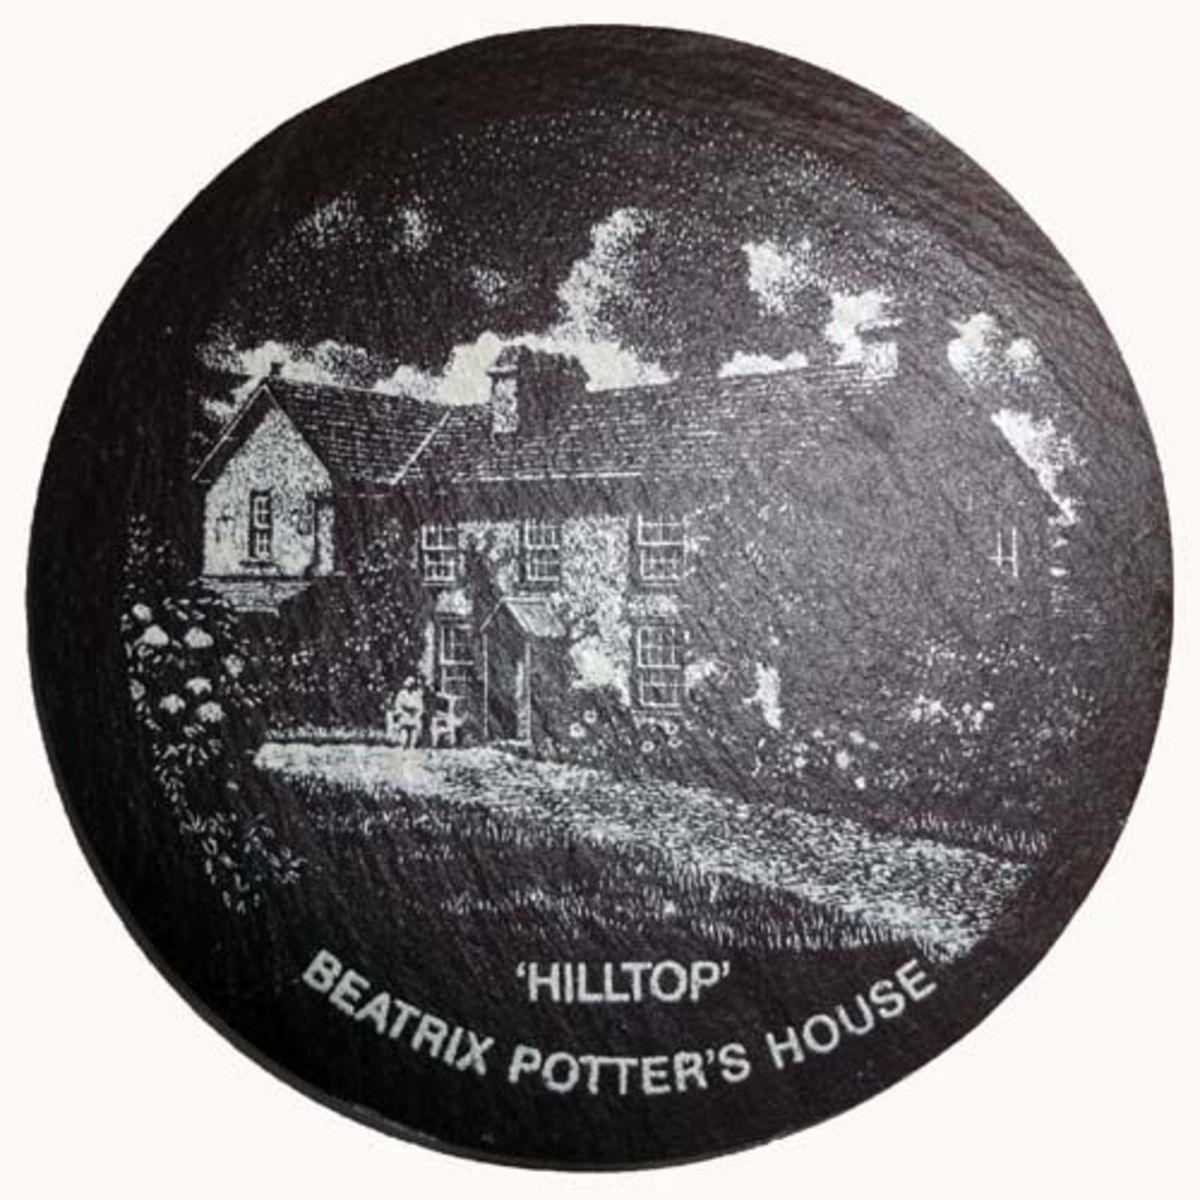 Slate coaster of Hilltop, Beatrix Potters House in the Lake District, England.